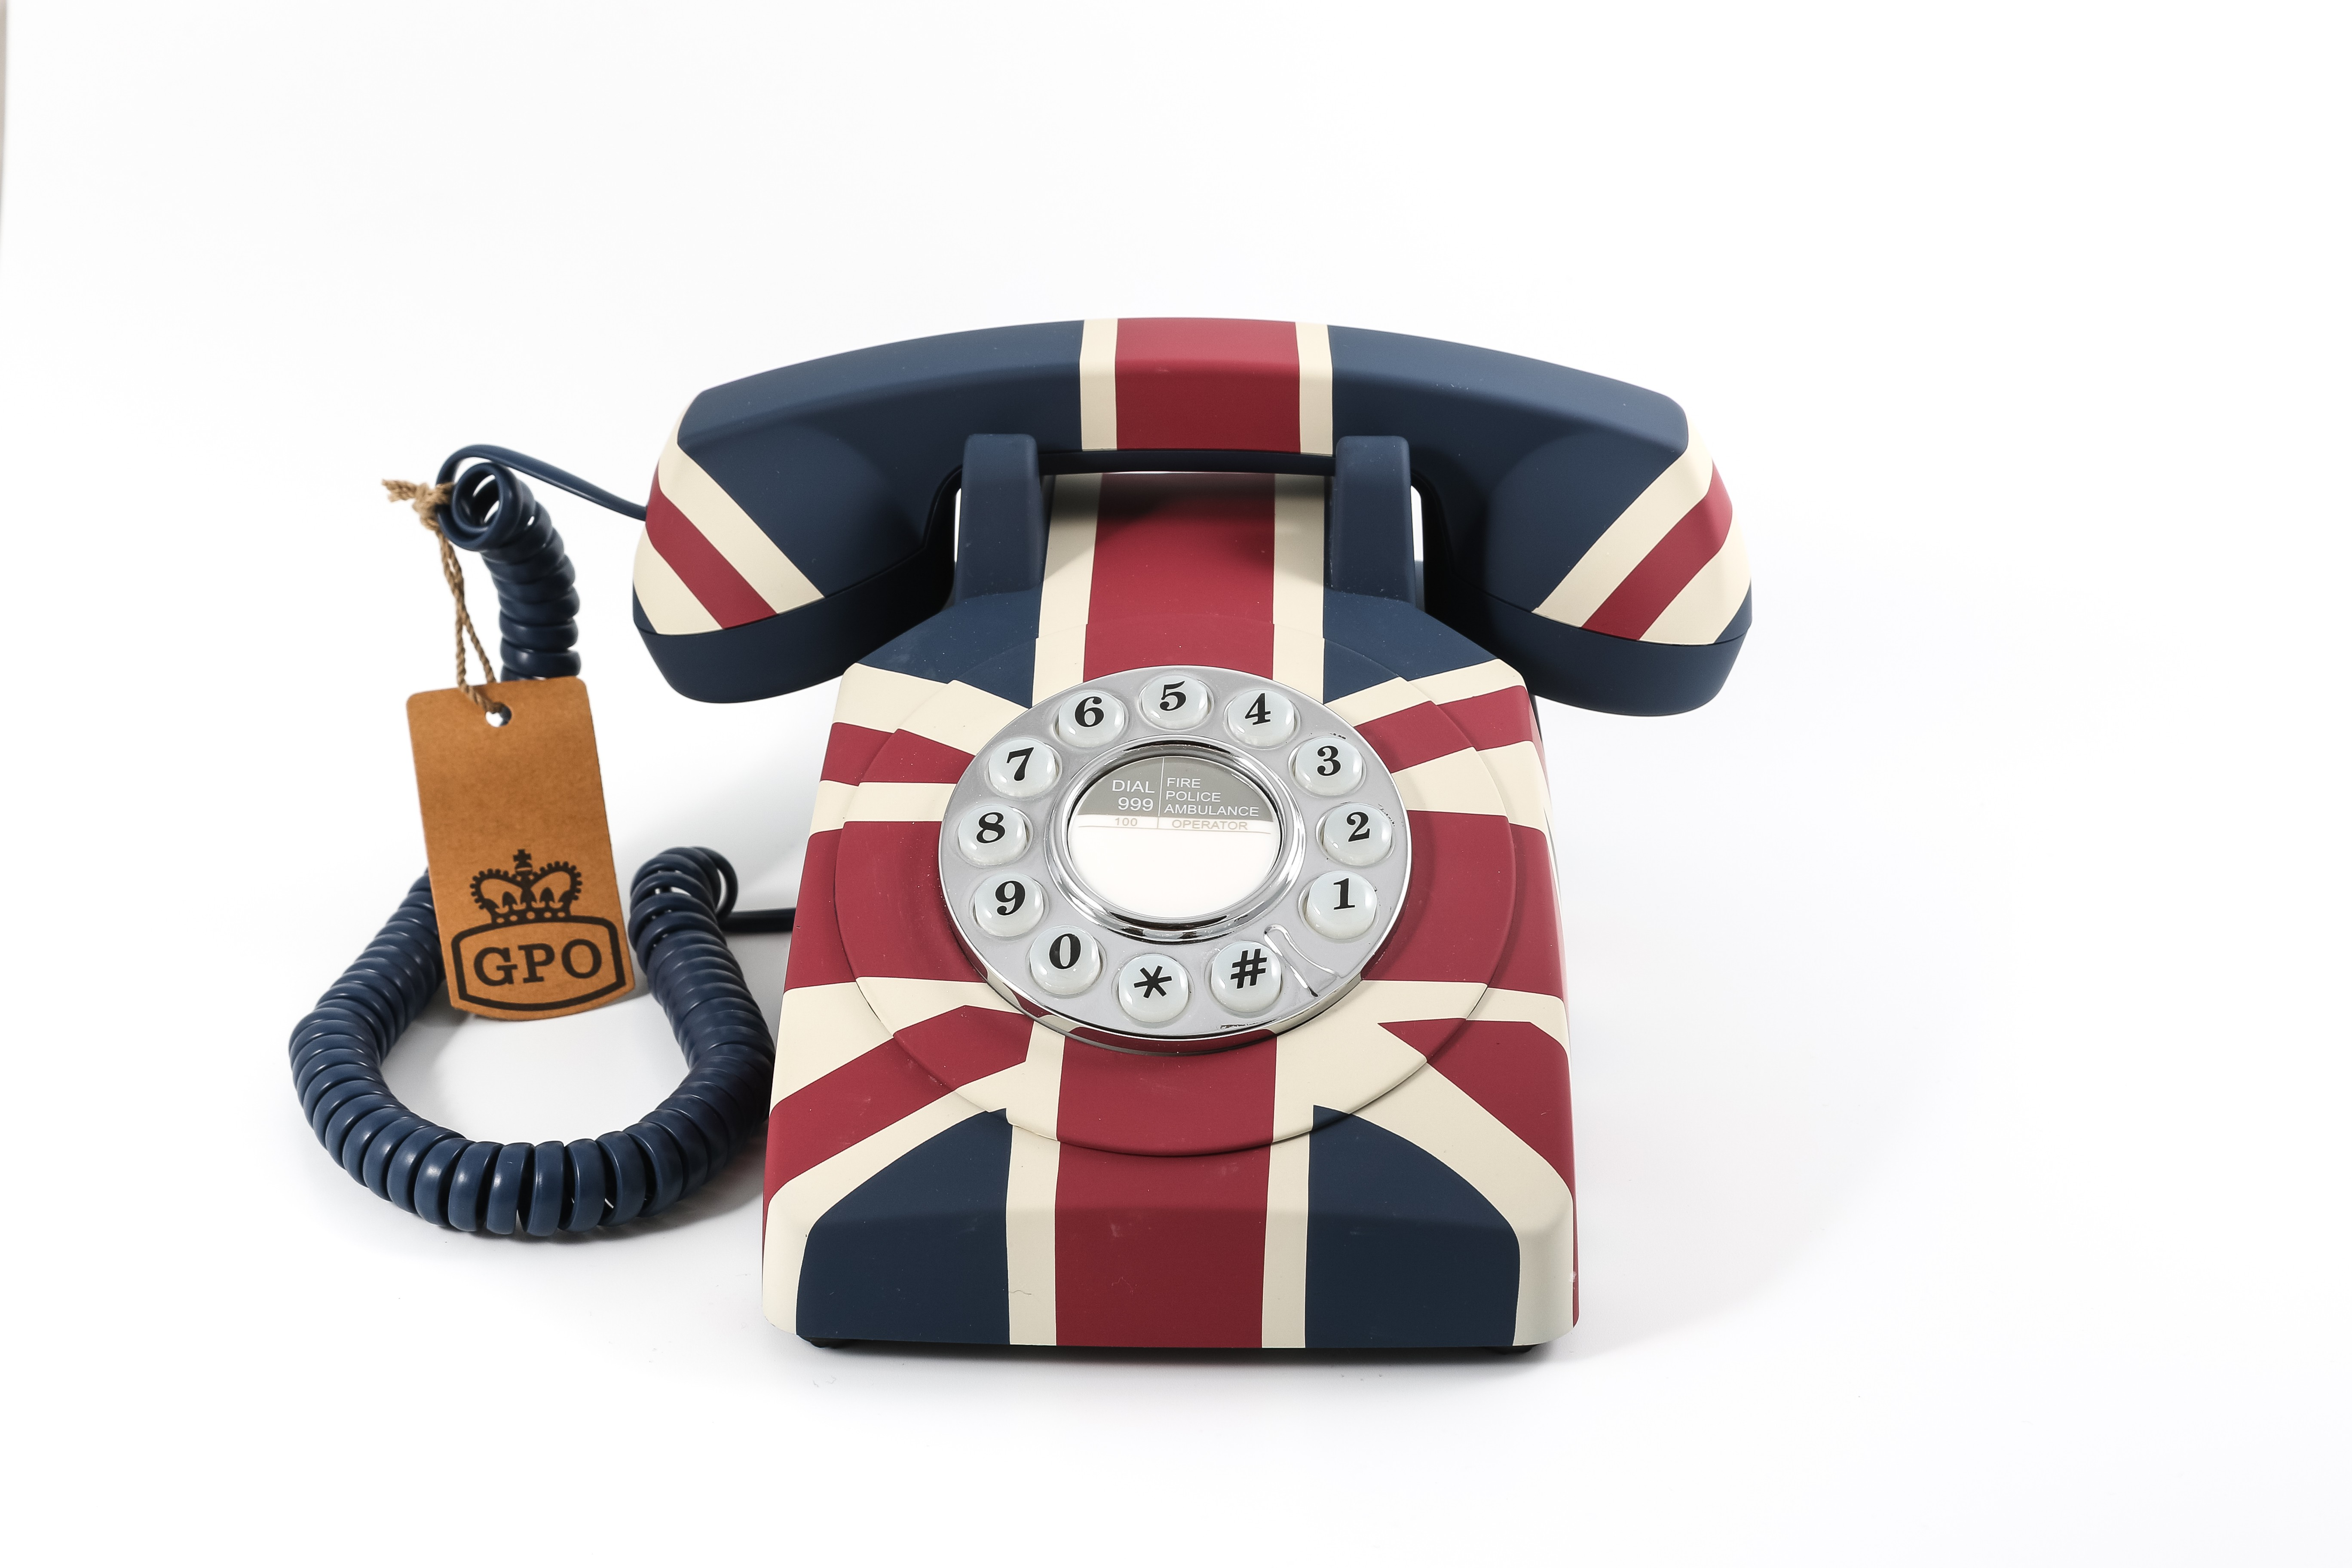 GPO 1970's Classic Retro Push Button Telephone - Union